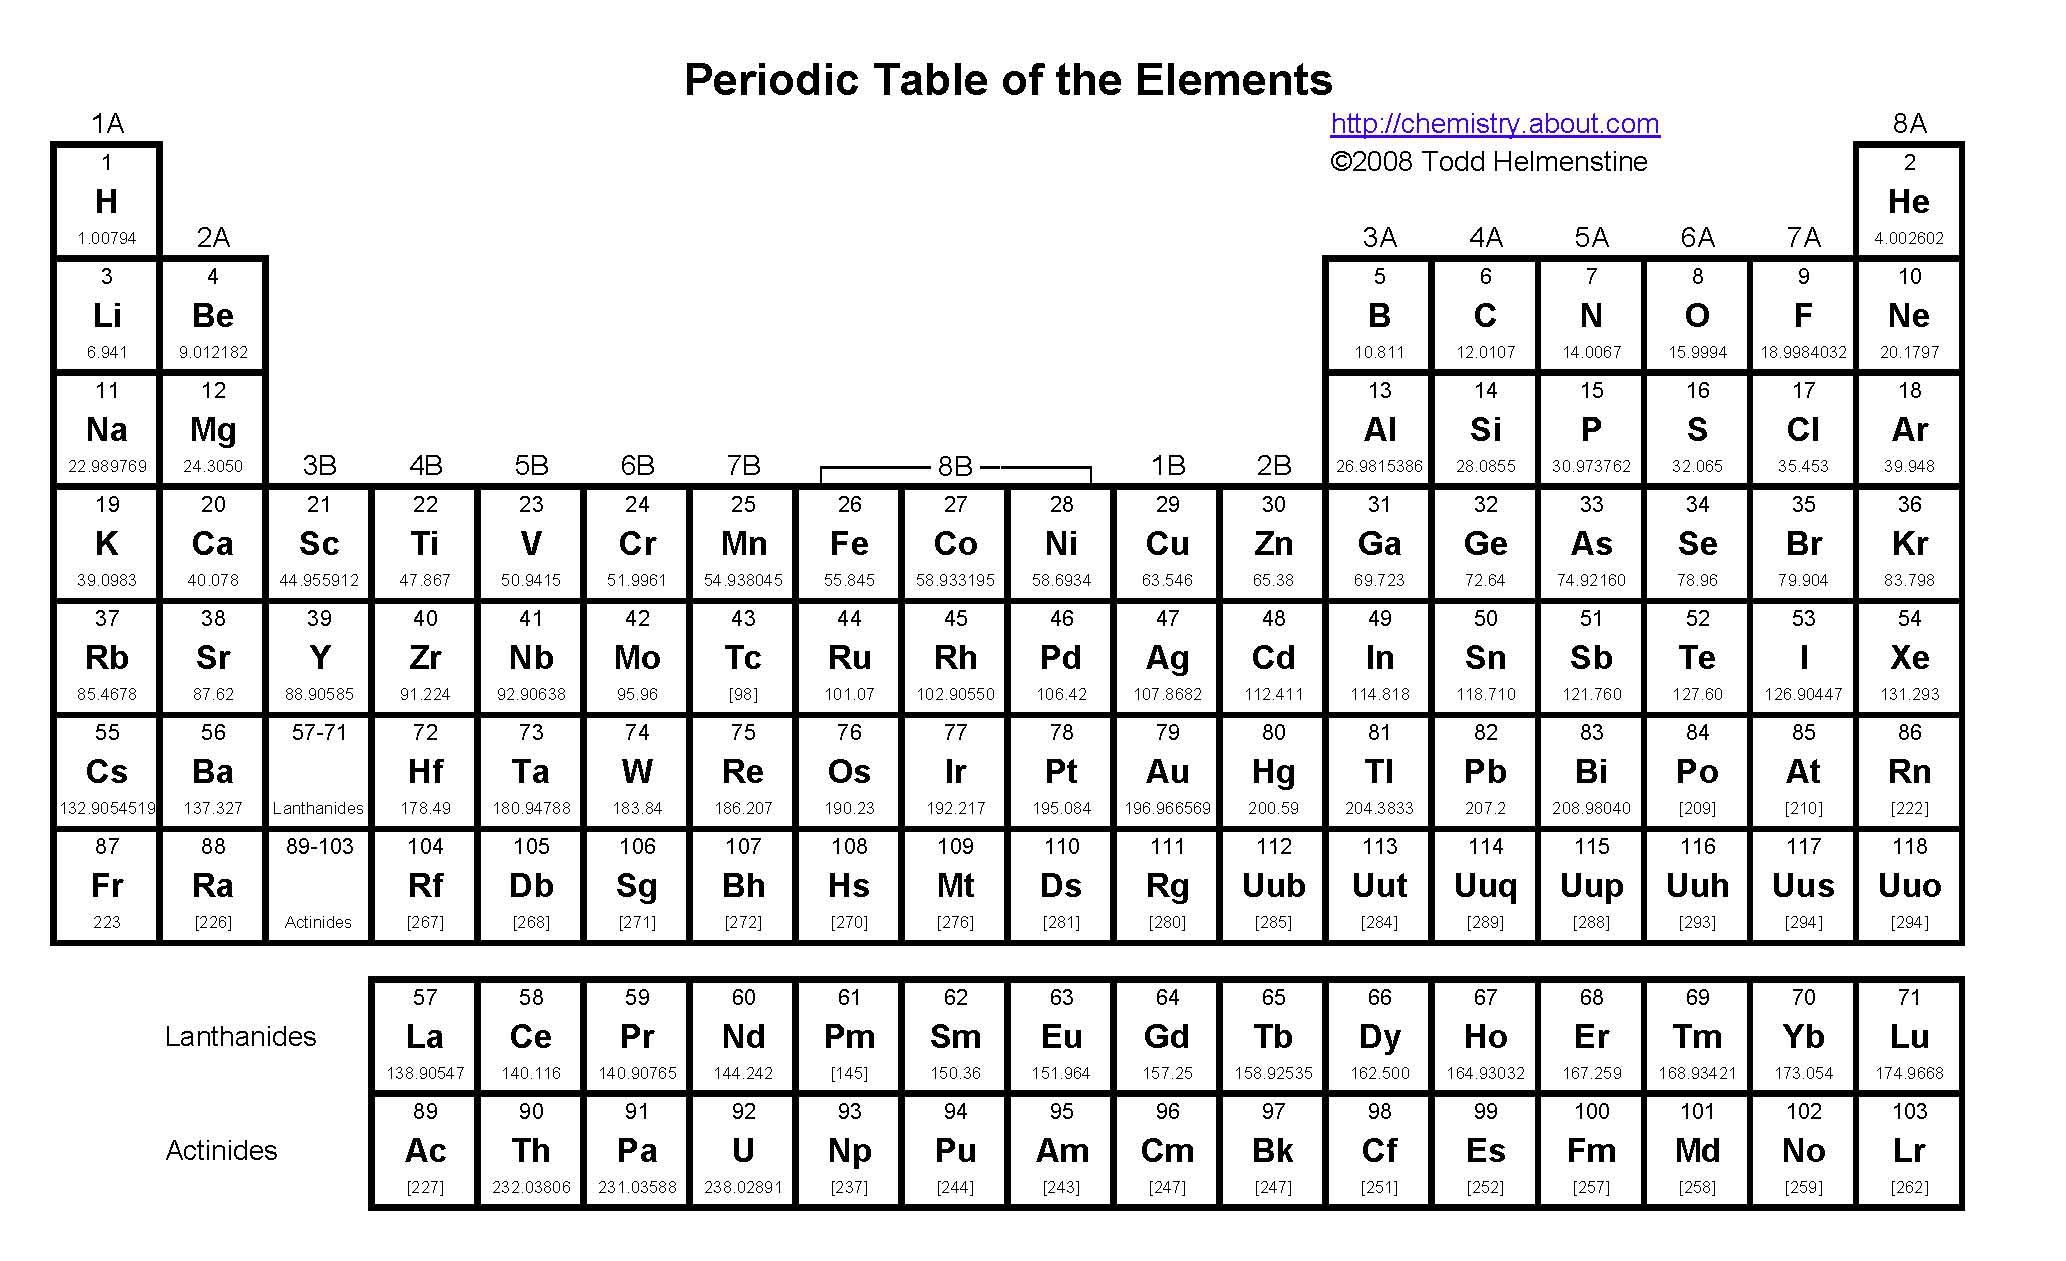 Metals nonmetals and metalloids periodic table colored periodic tables show element groups at a glance which are elements that share common gamestrikefo Gallery